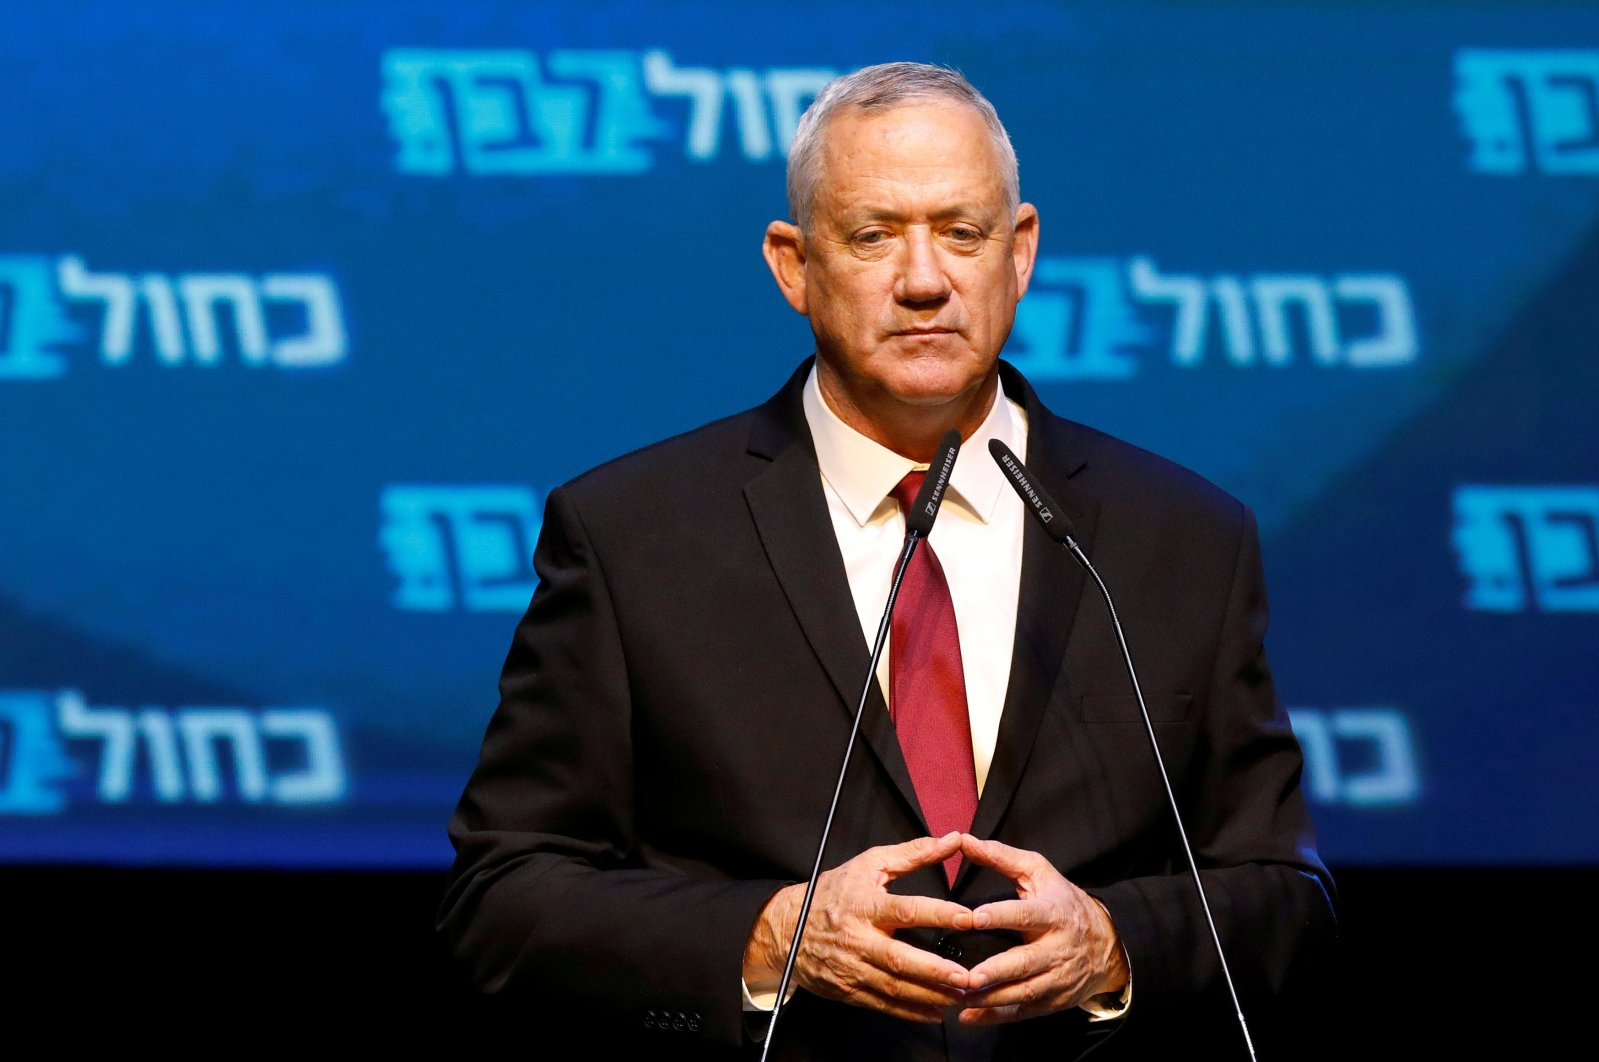 Blue and White party leader Benny Gantz reacts at the party's headquarters following the announcement of exit polls during Israel's parliamentary election in Tel Aviv, Israel, Sept. 18, 2019. (Reuters Photo)